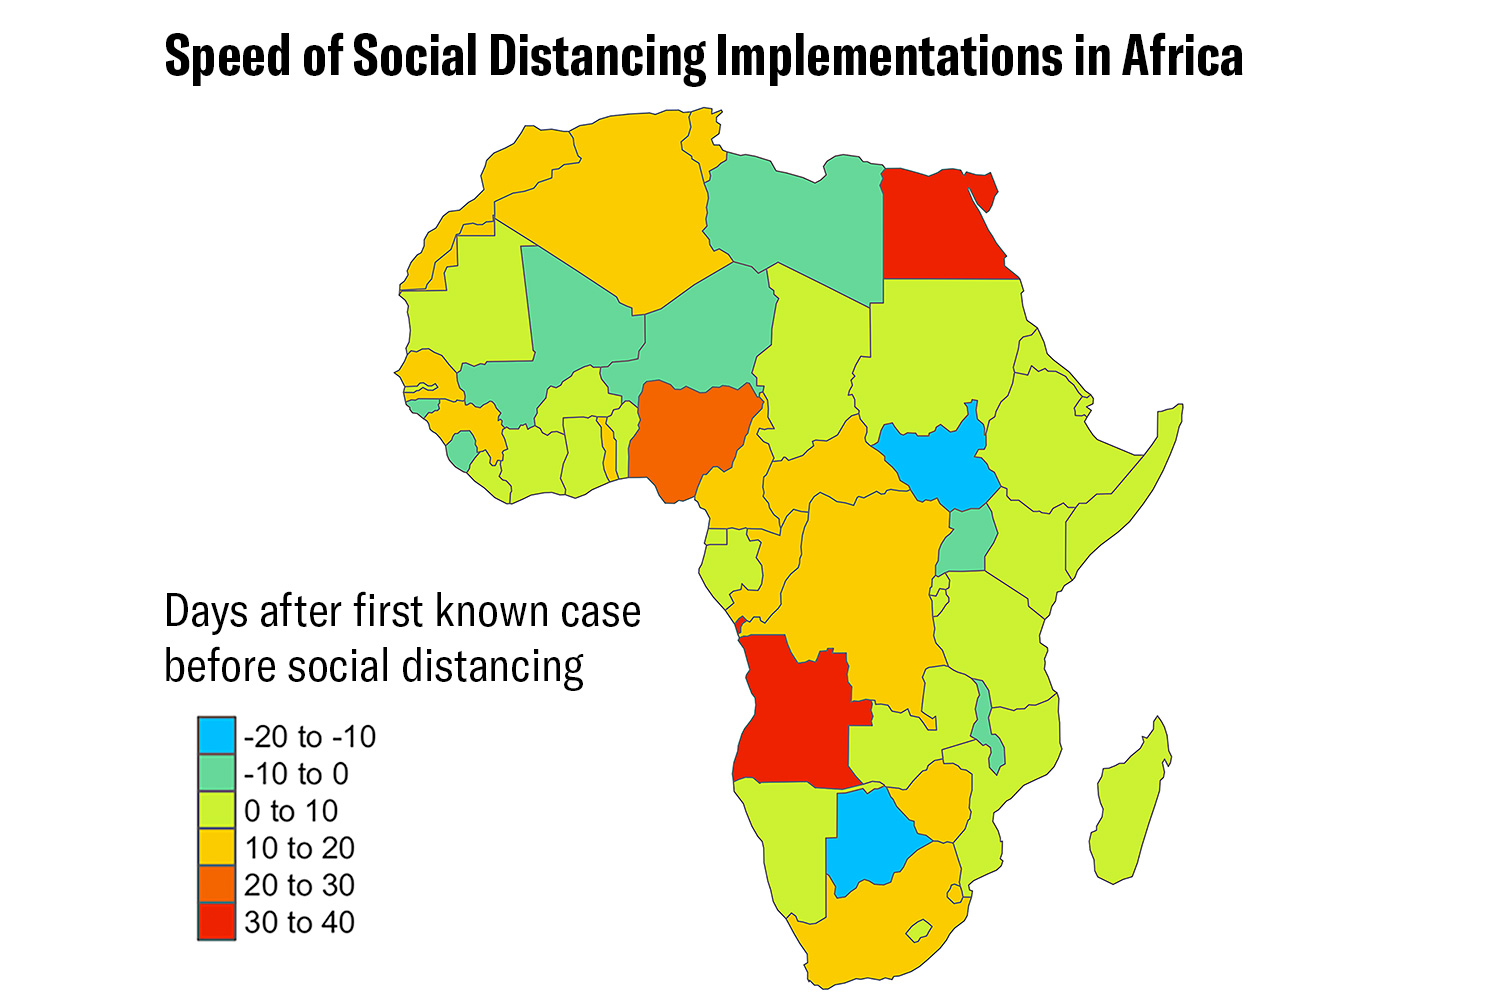 The image is a map of the African continent with countries color coded according to how quickly they implemented social distancing measures.